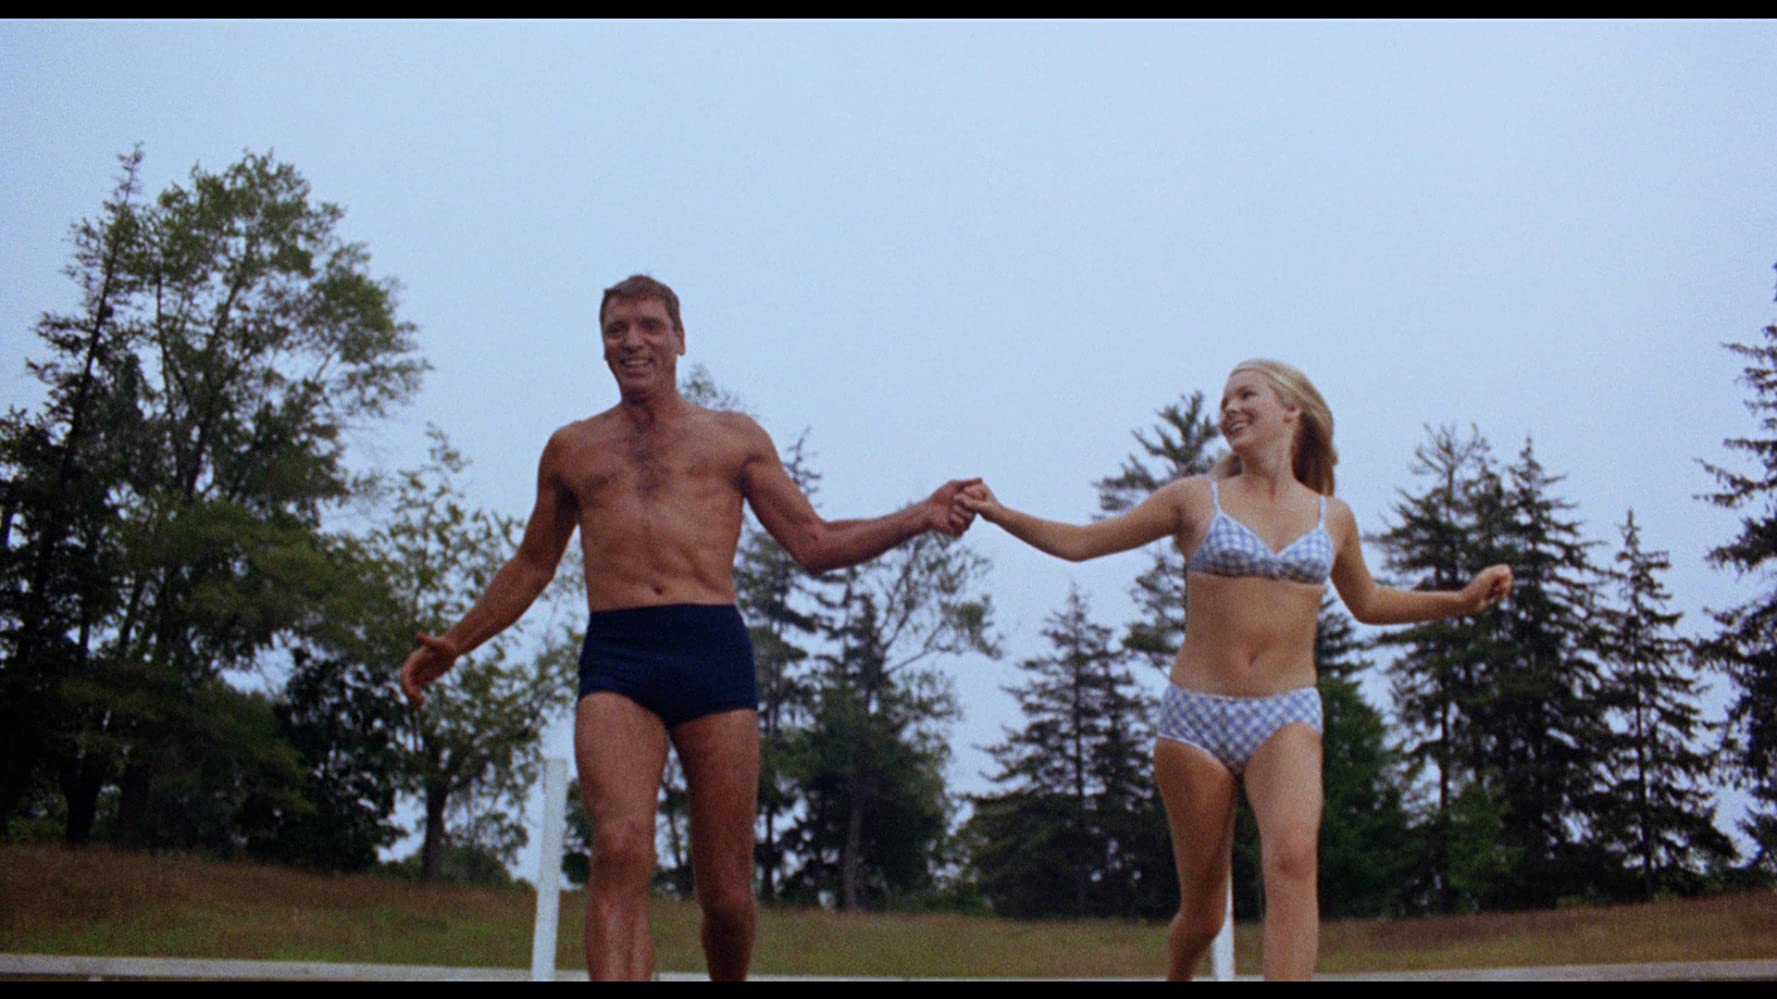 Burt Lancaster and Janet Landgard in The Swimmer (1968)